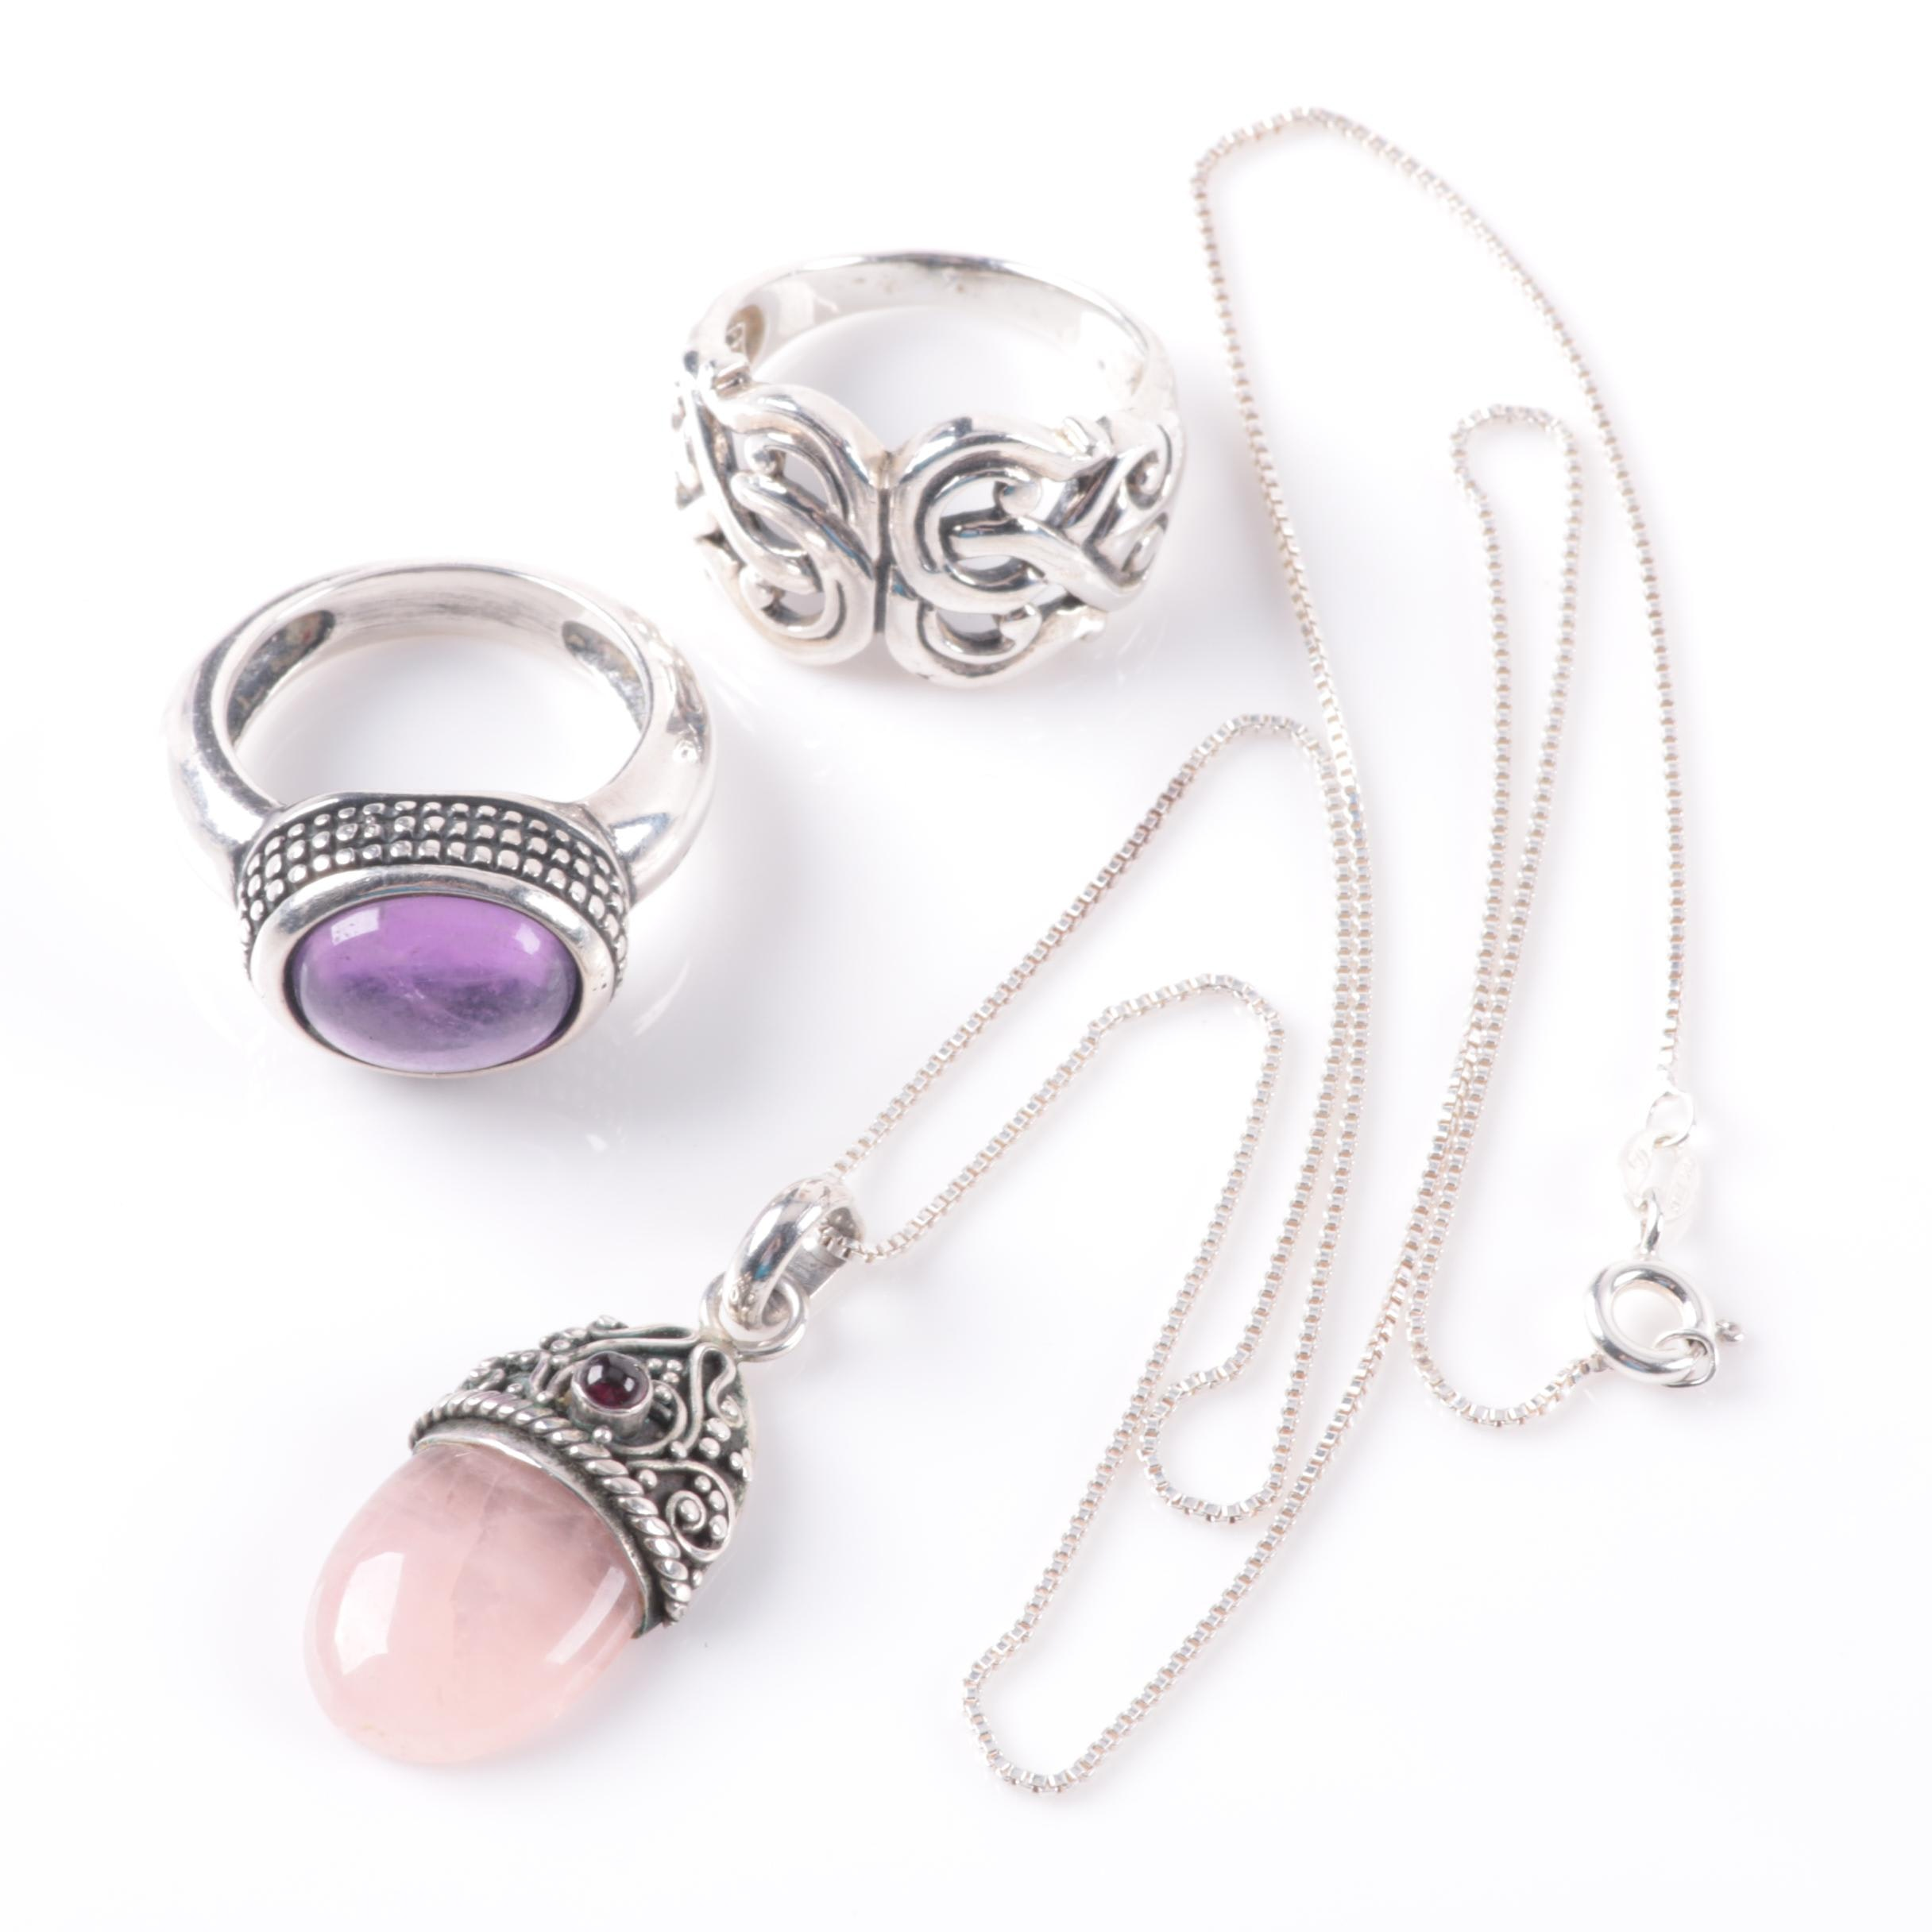 Sterling Silver Amethyst, Rose Quartz, and Garnet Necklace and Ring Selection